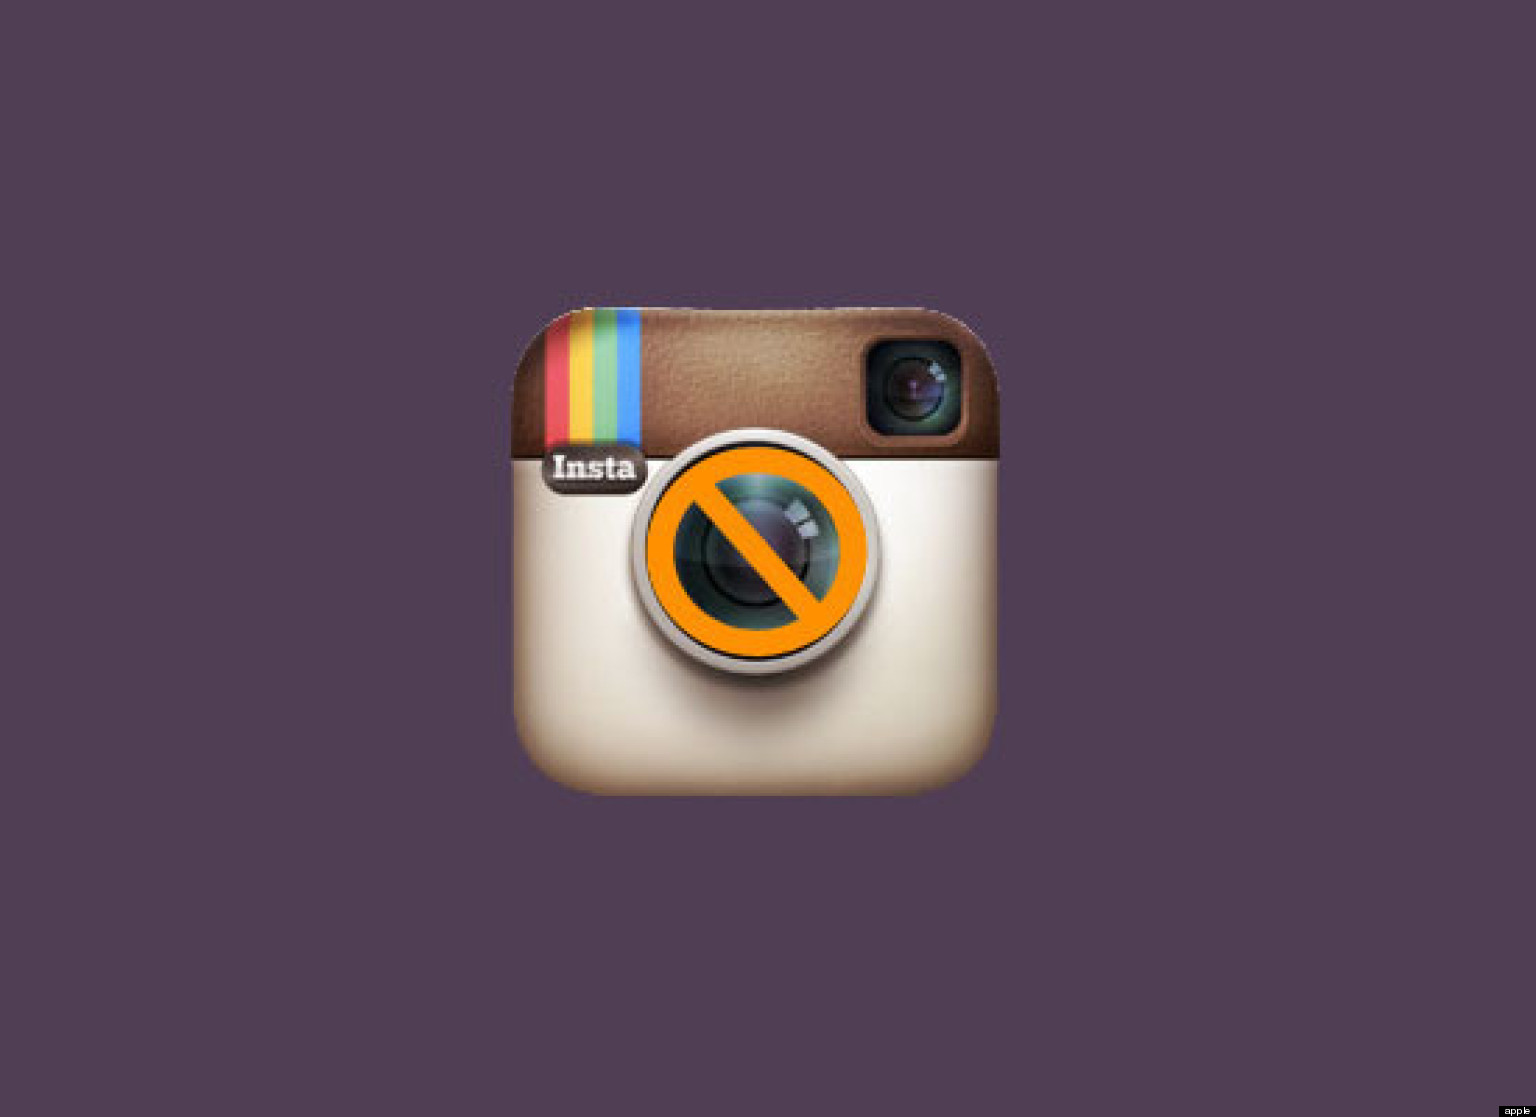 Delete instagram how to download your photos kill your account delete instagram how to download your photos kill your account and find alternatives huffpost ccuart Images